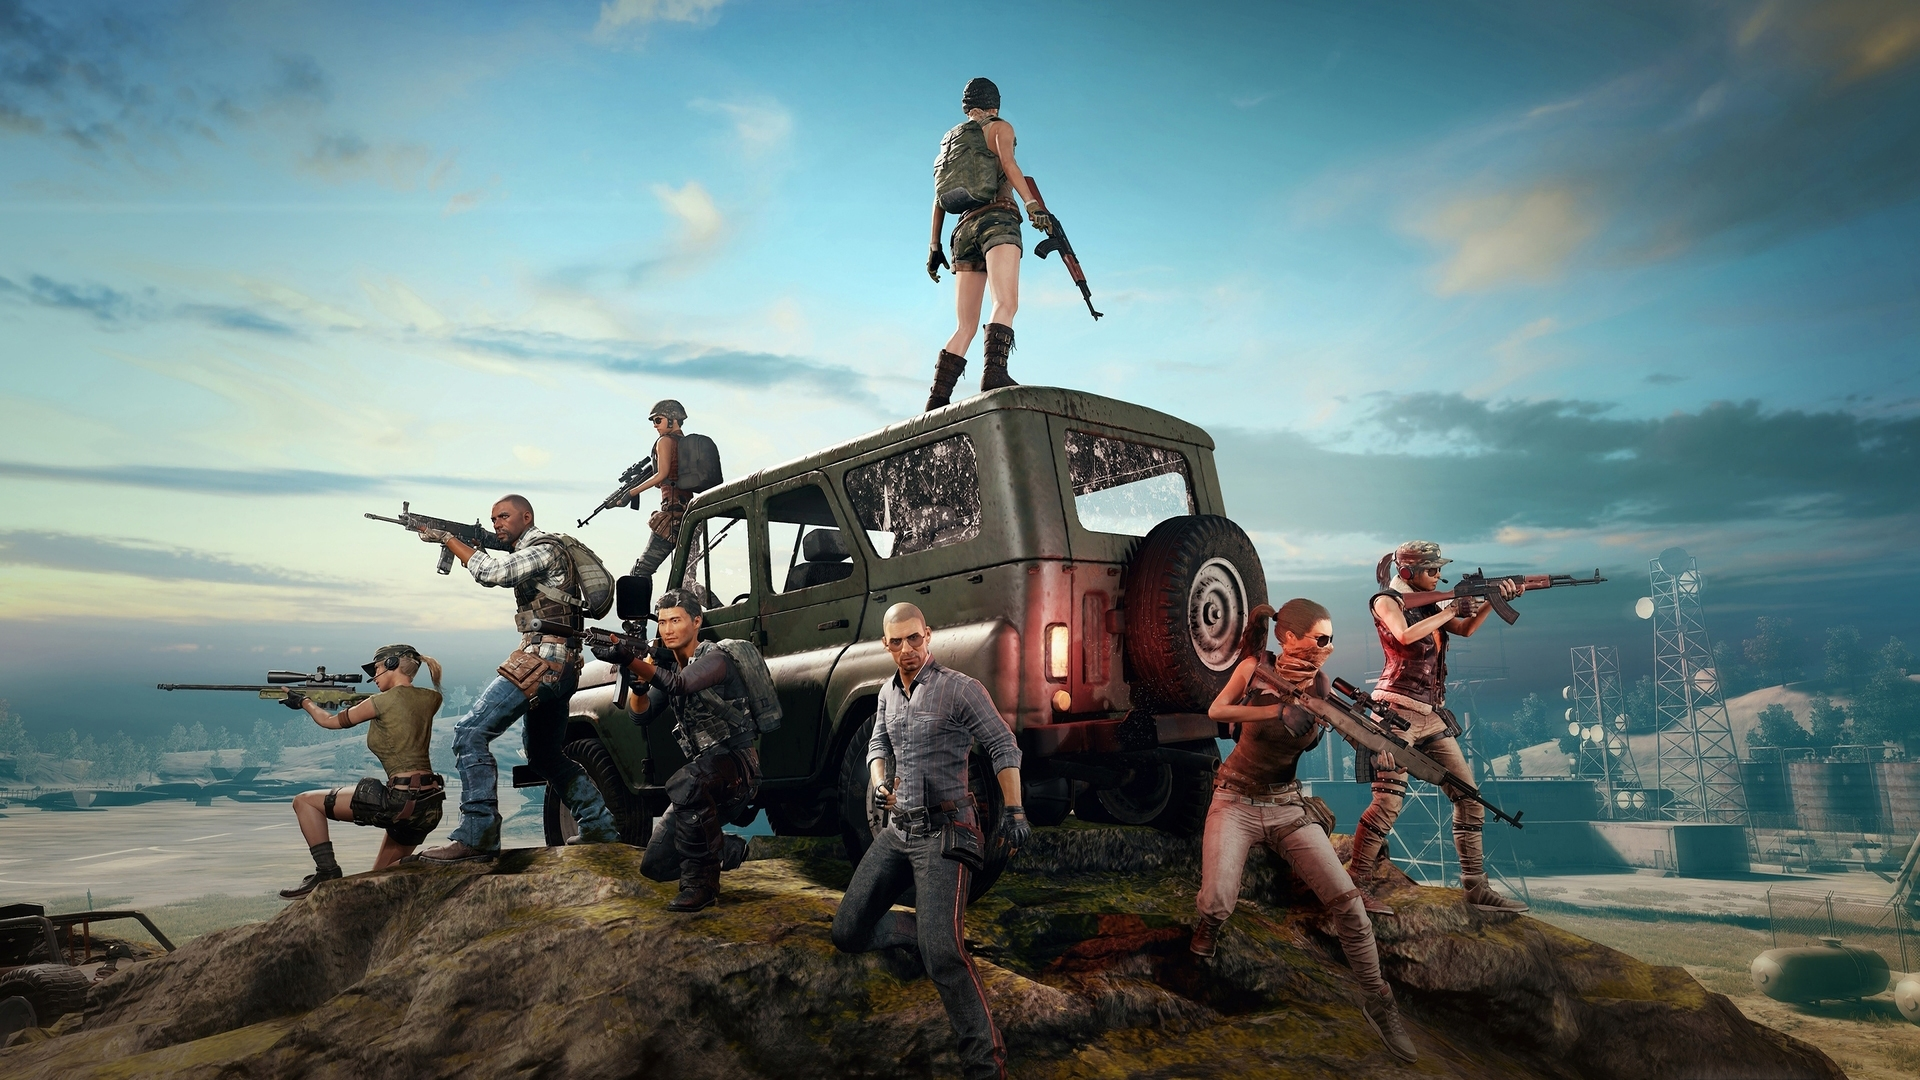 Download Pubg Mobile Wallpapers 720p 1080p 4k: 1920x1080 2018 4k PlayerUnknowns Battlegrounds Laptop Full